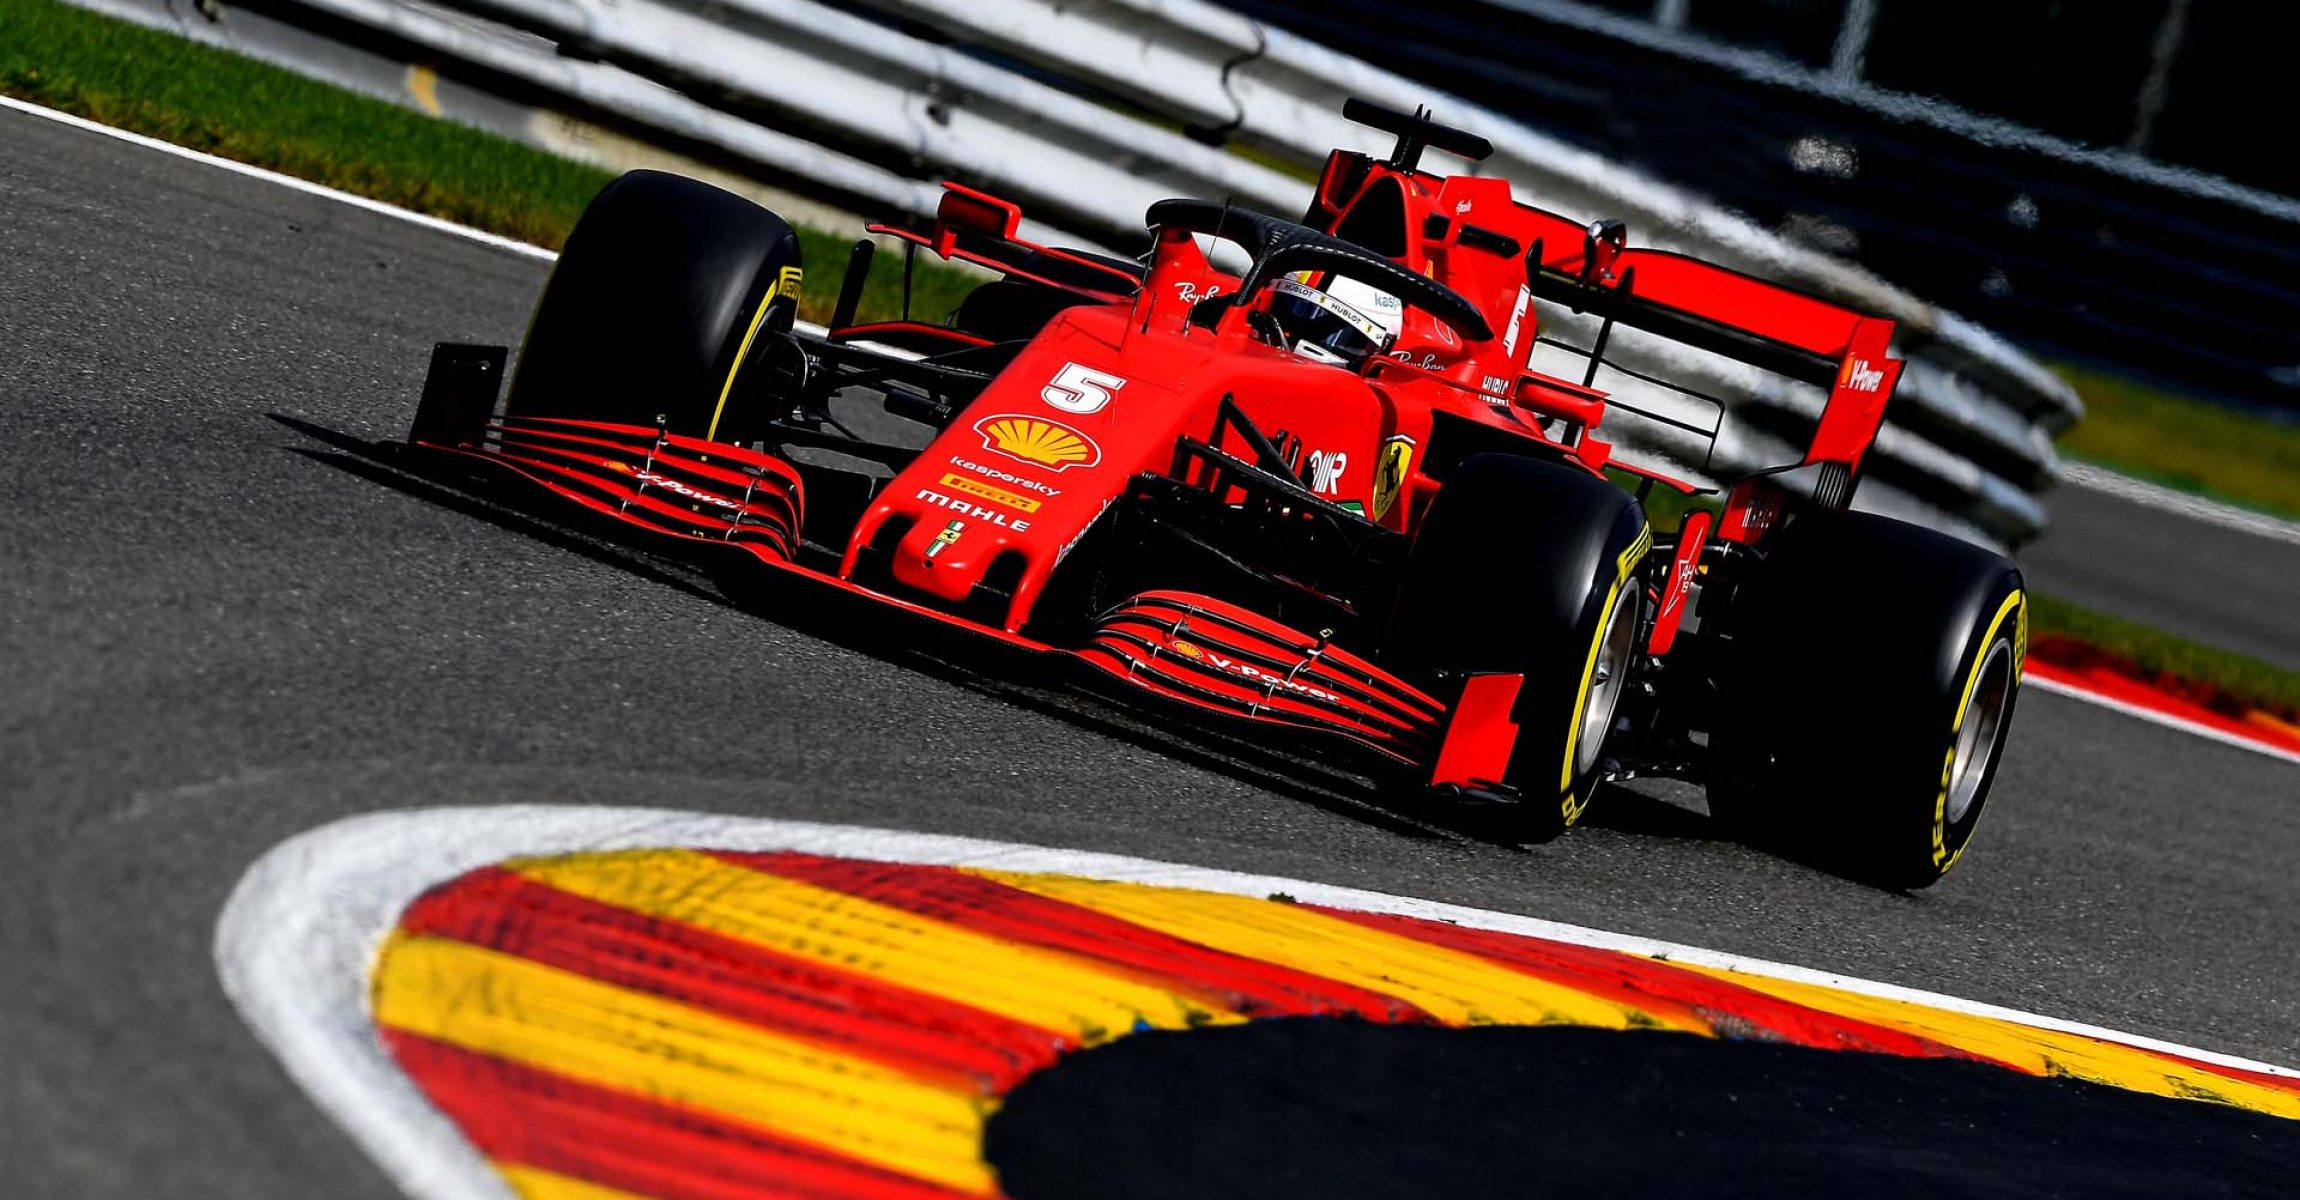 GP BELGIO F1/2020 -  SABATO 29/08/2020    credit: @Scuderia Ferrari Press Office Sebastian Vettel Ferrari